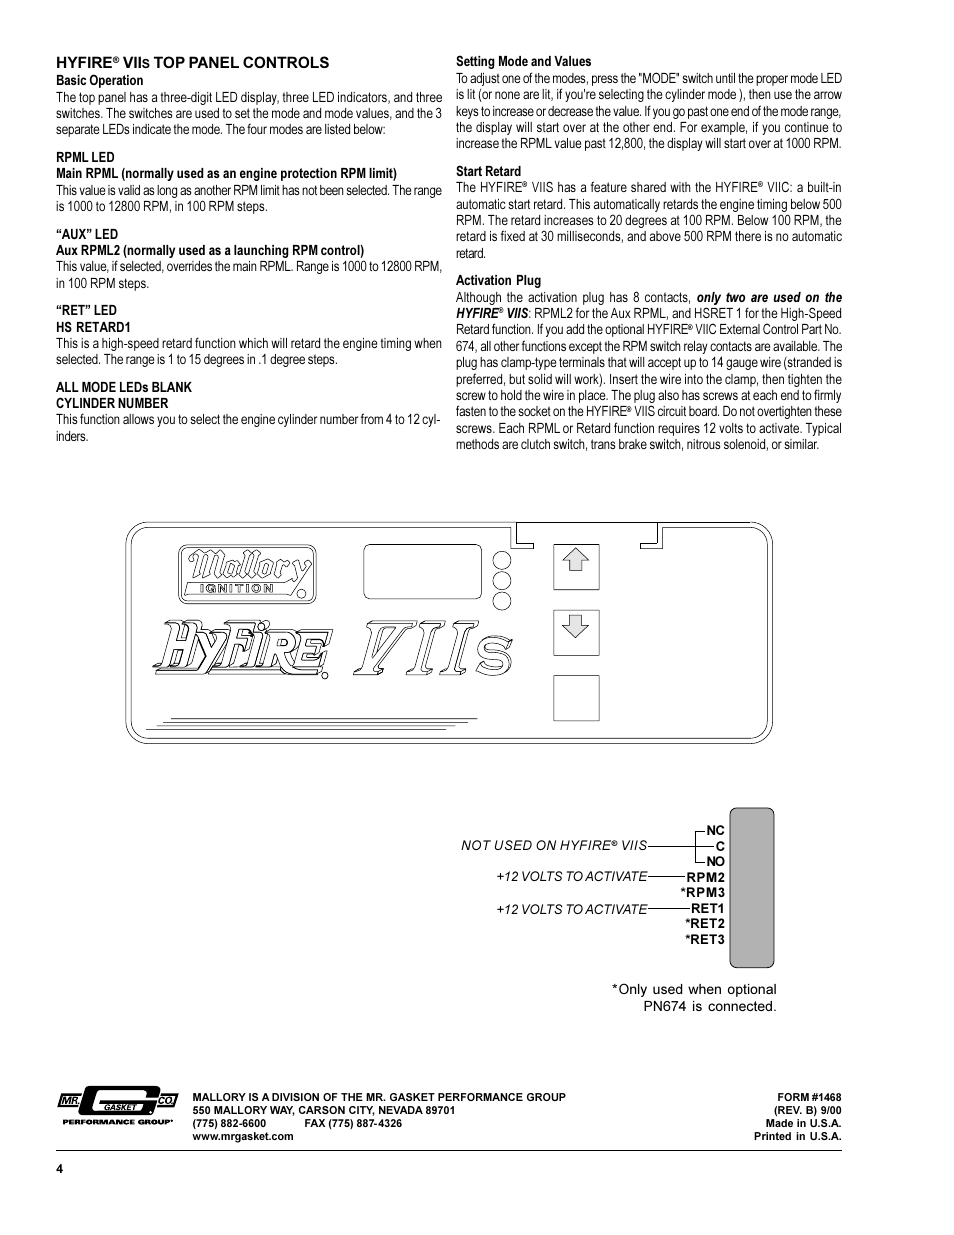 mallory ignition mallory hyfire viis sportsman cd ignition system 667s page4?resize\=665%2C861 diagrams ford electronic ignition wiring diagram electronic ford electronic ignition wiring diagram at alyssarenee.co